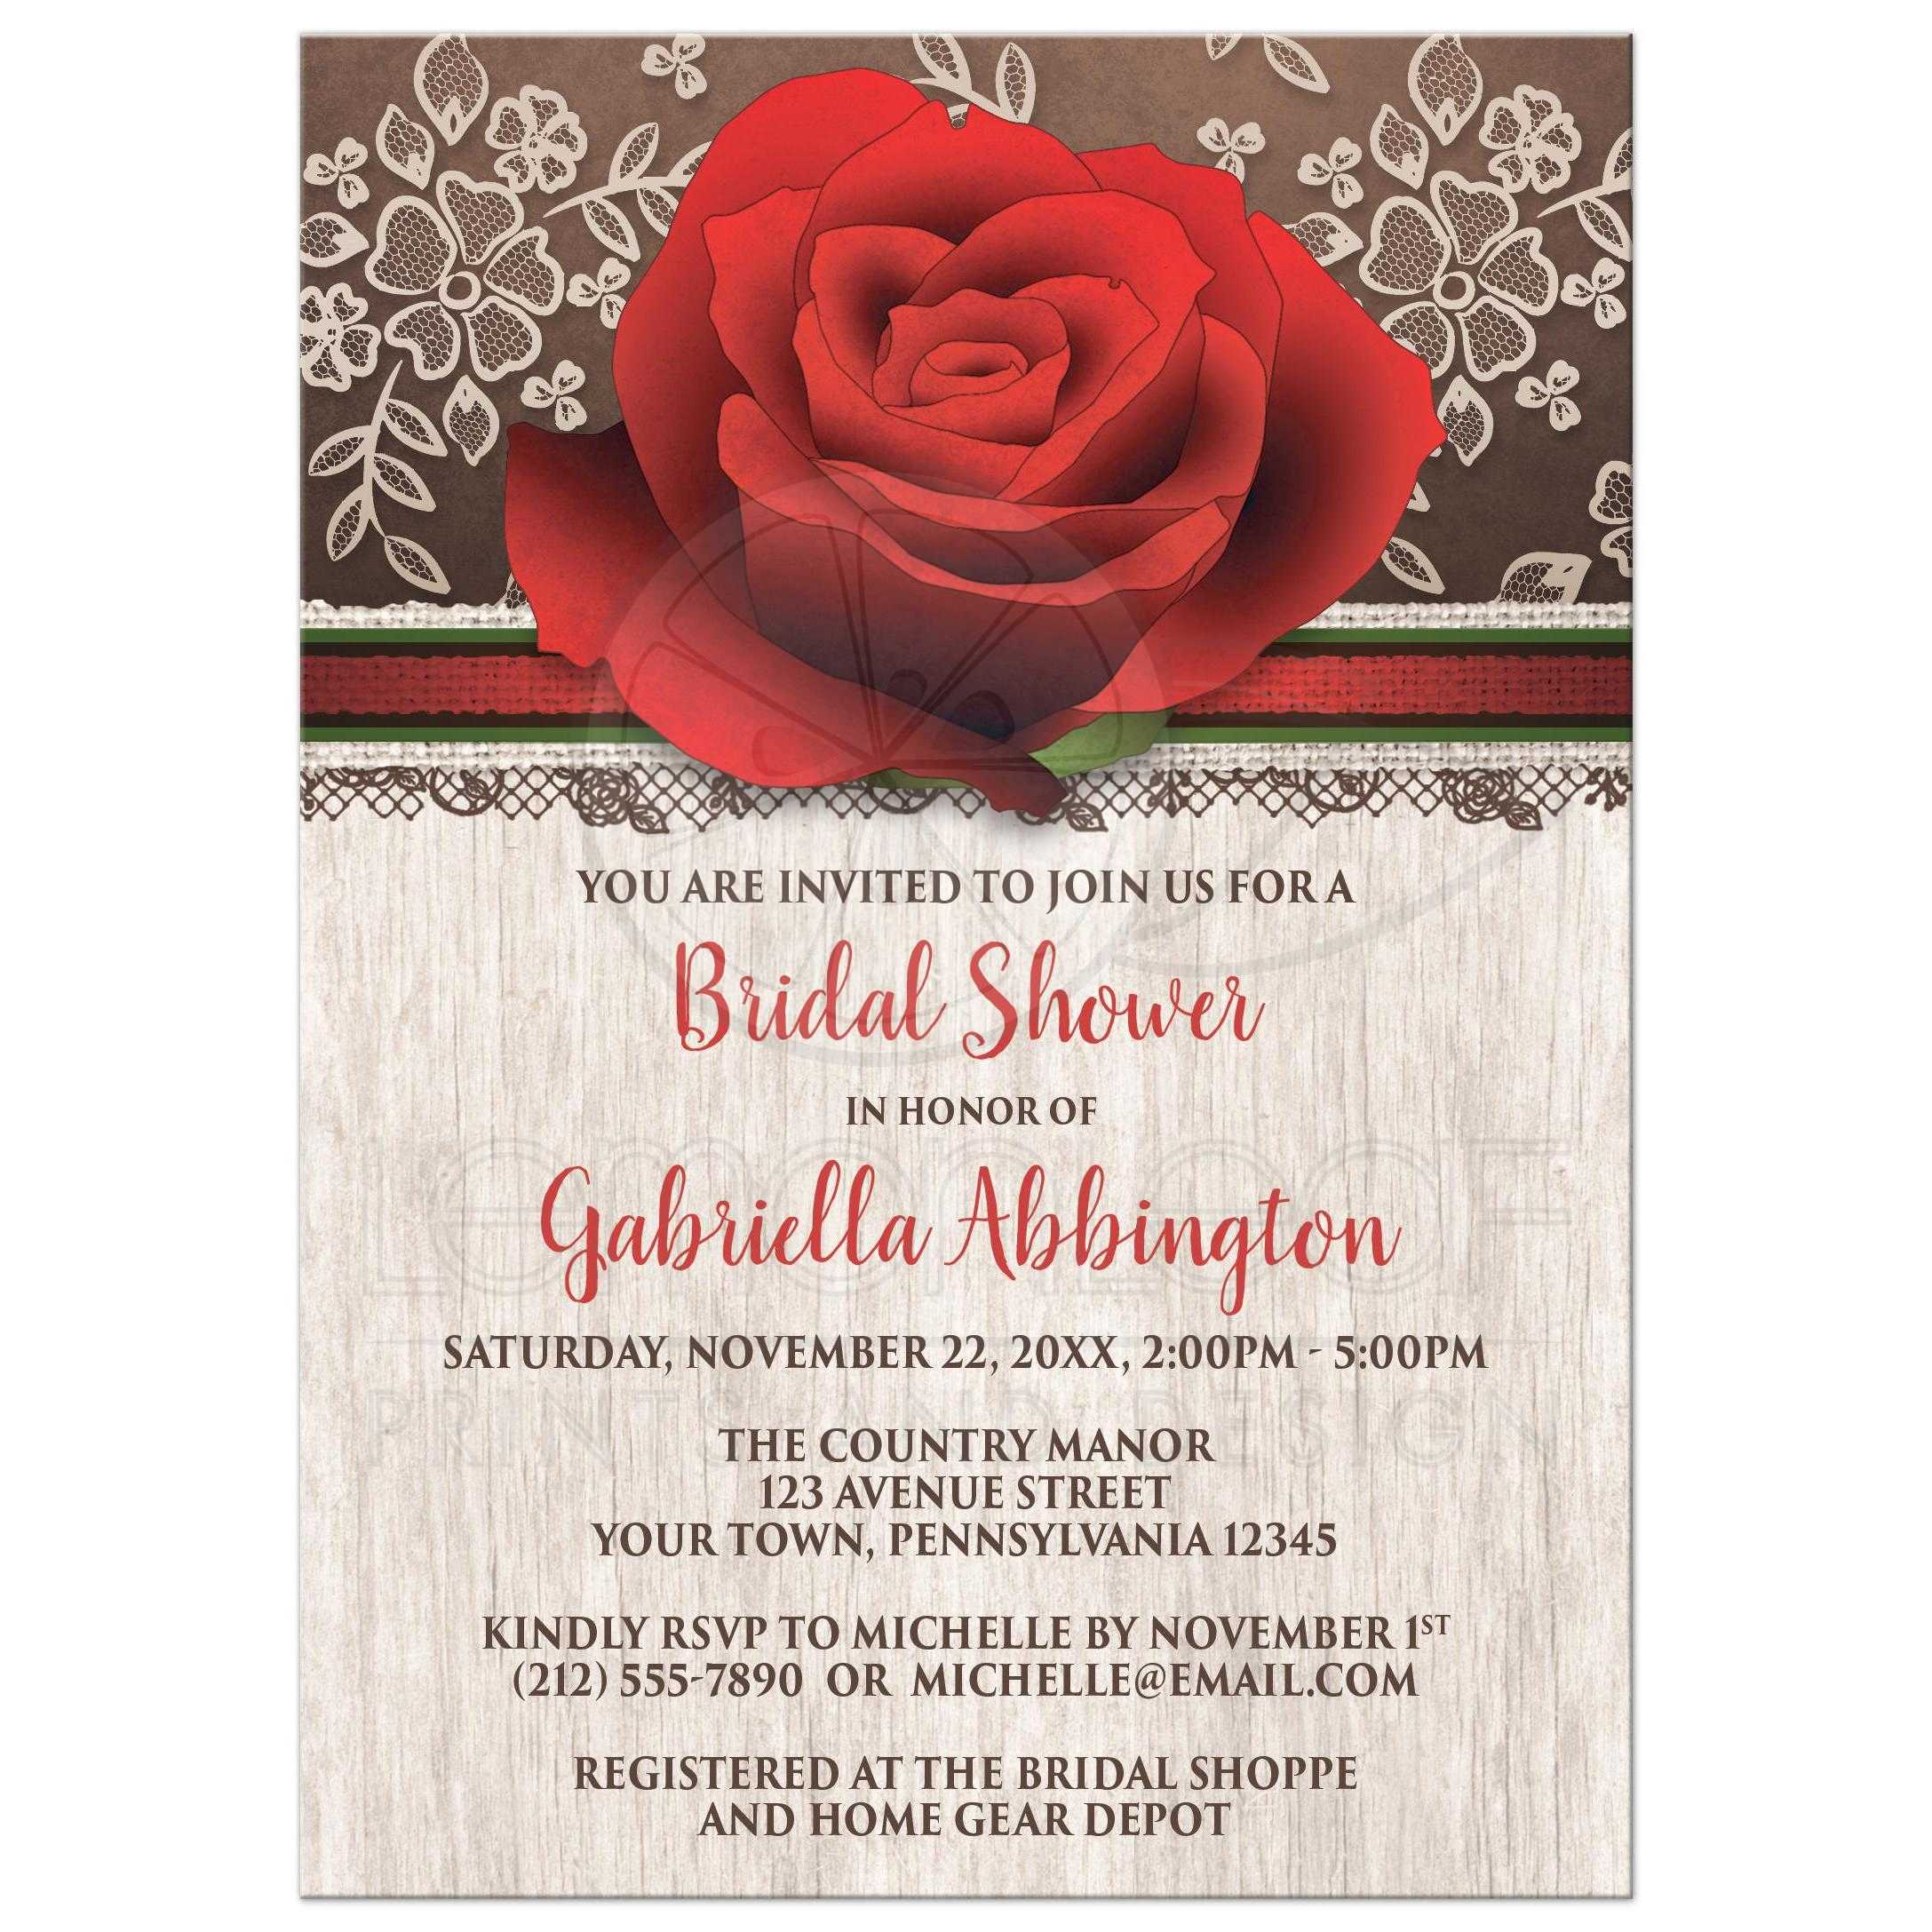 Bridal Shower Invitations   Rustic Wood Lace Red Rose Brown